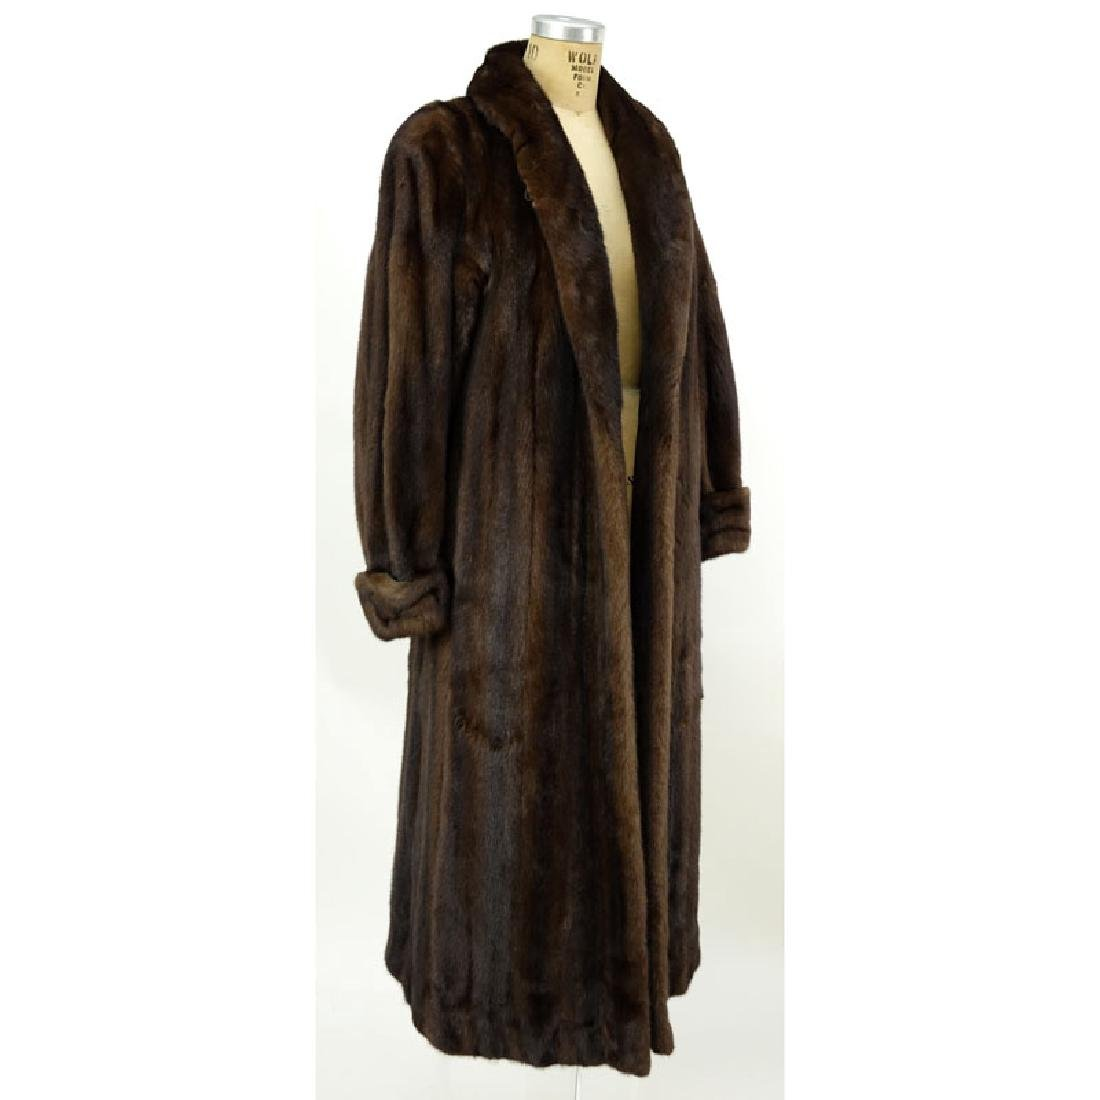 A Birger Christensen Full Length Ranch Mink Coat. Saks